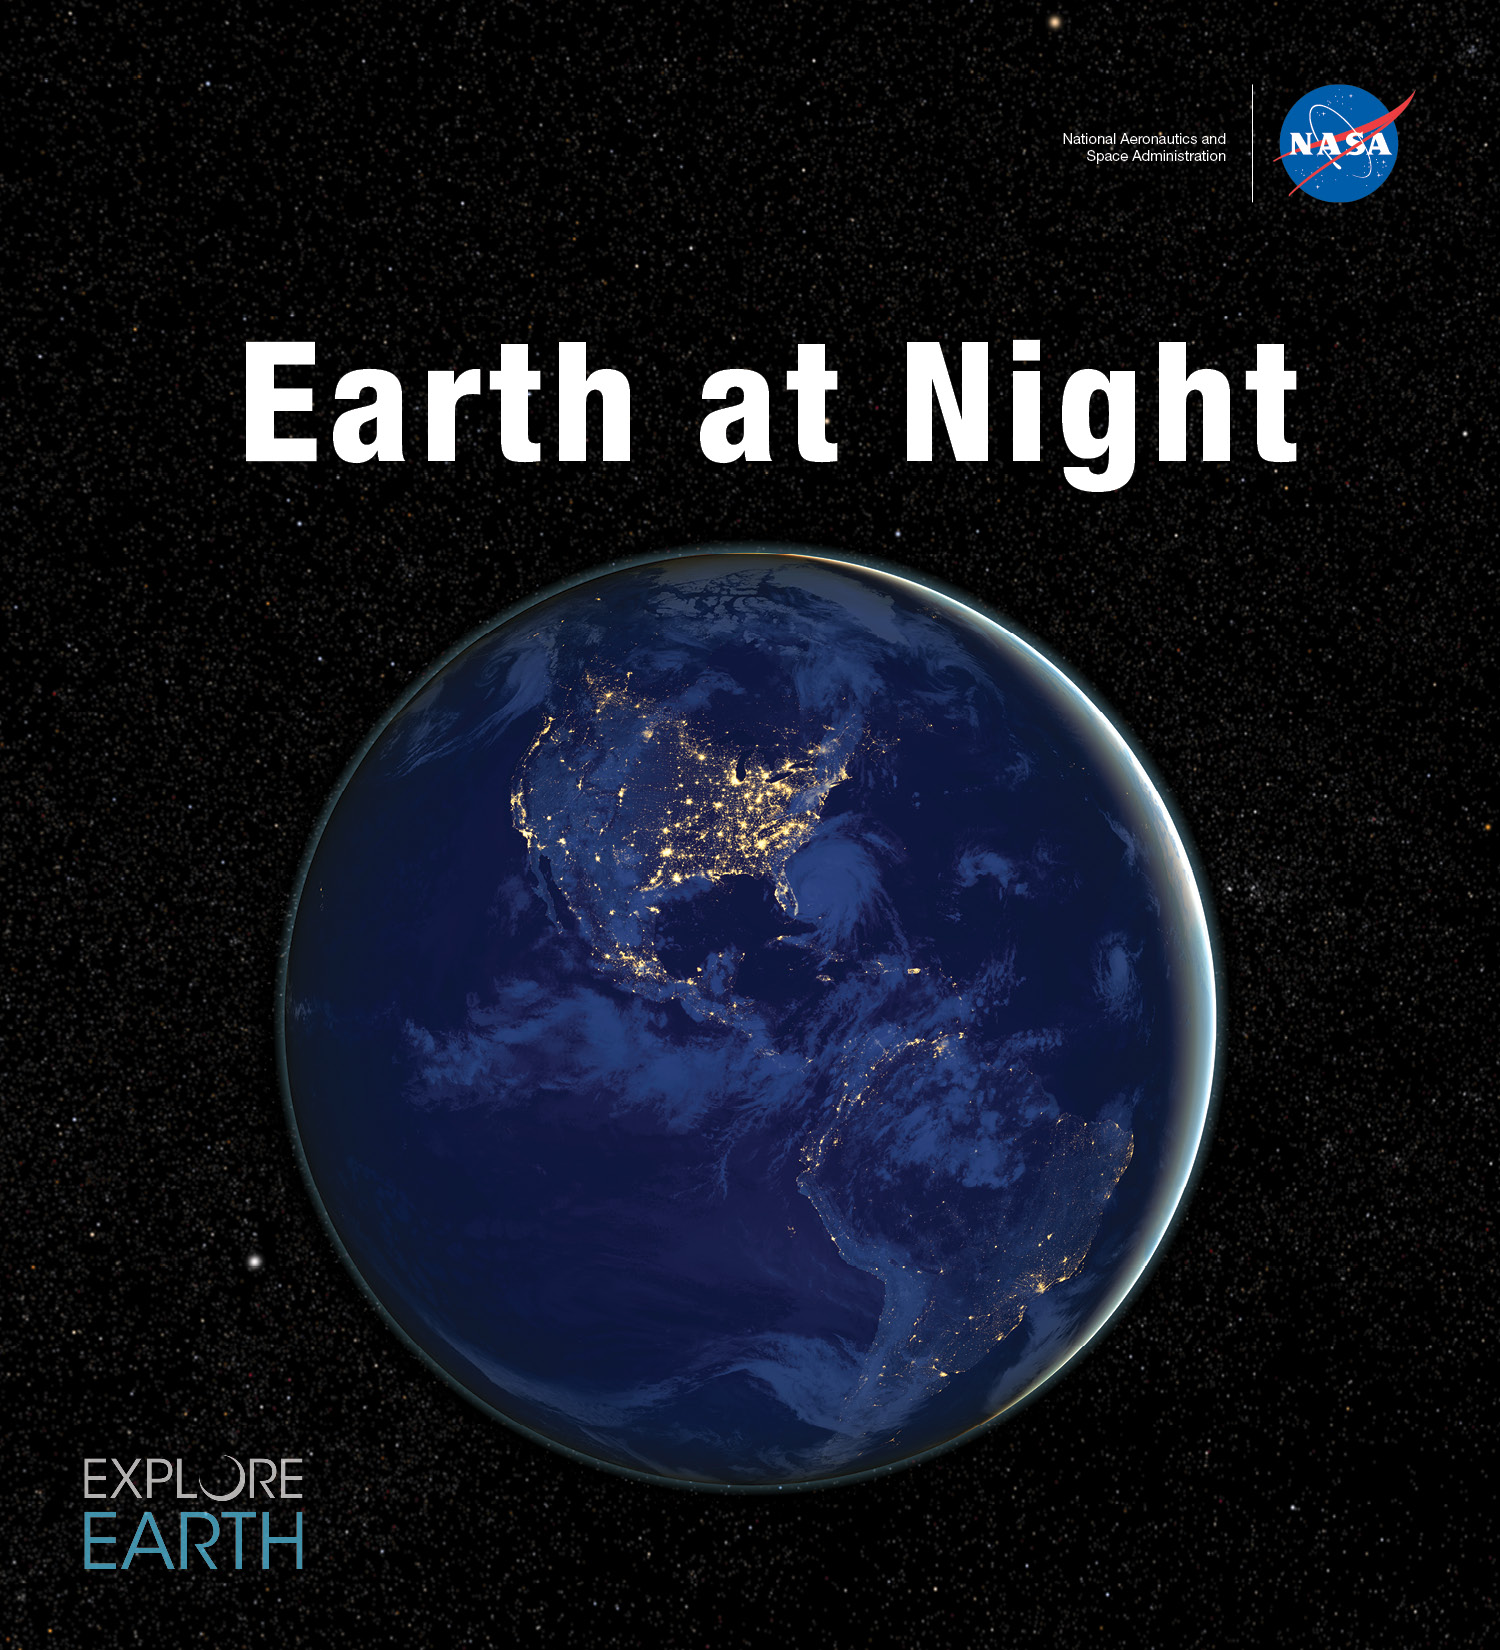 earthatnight-cover.jpg